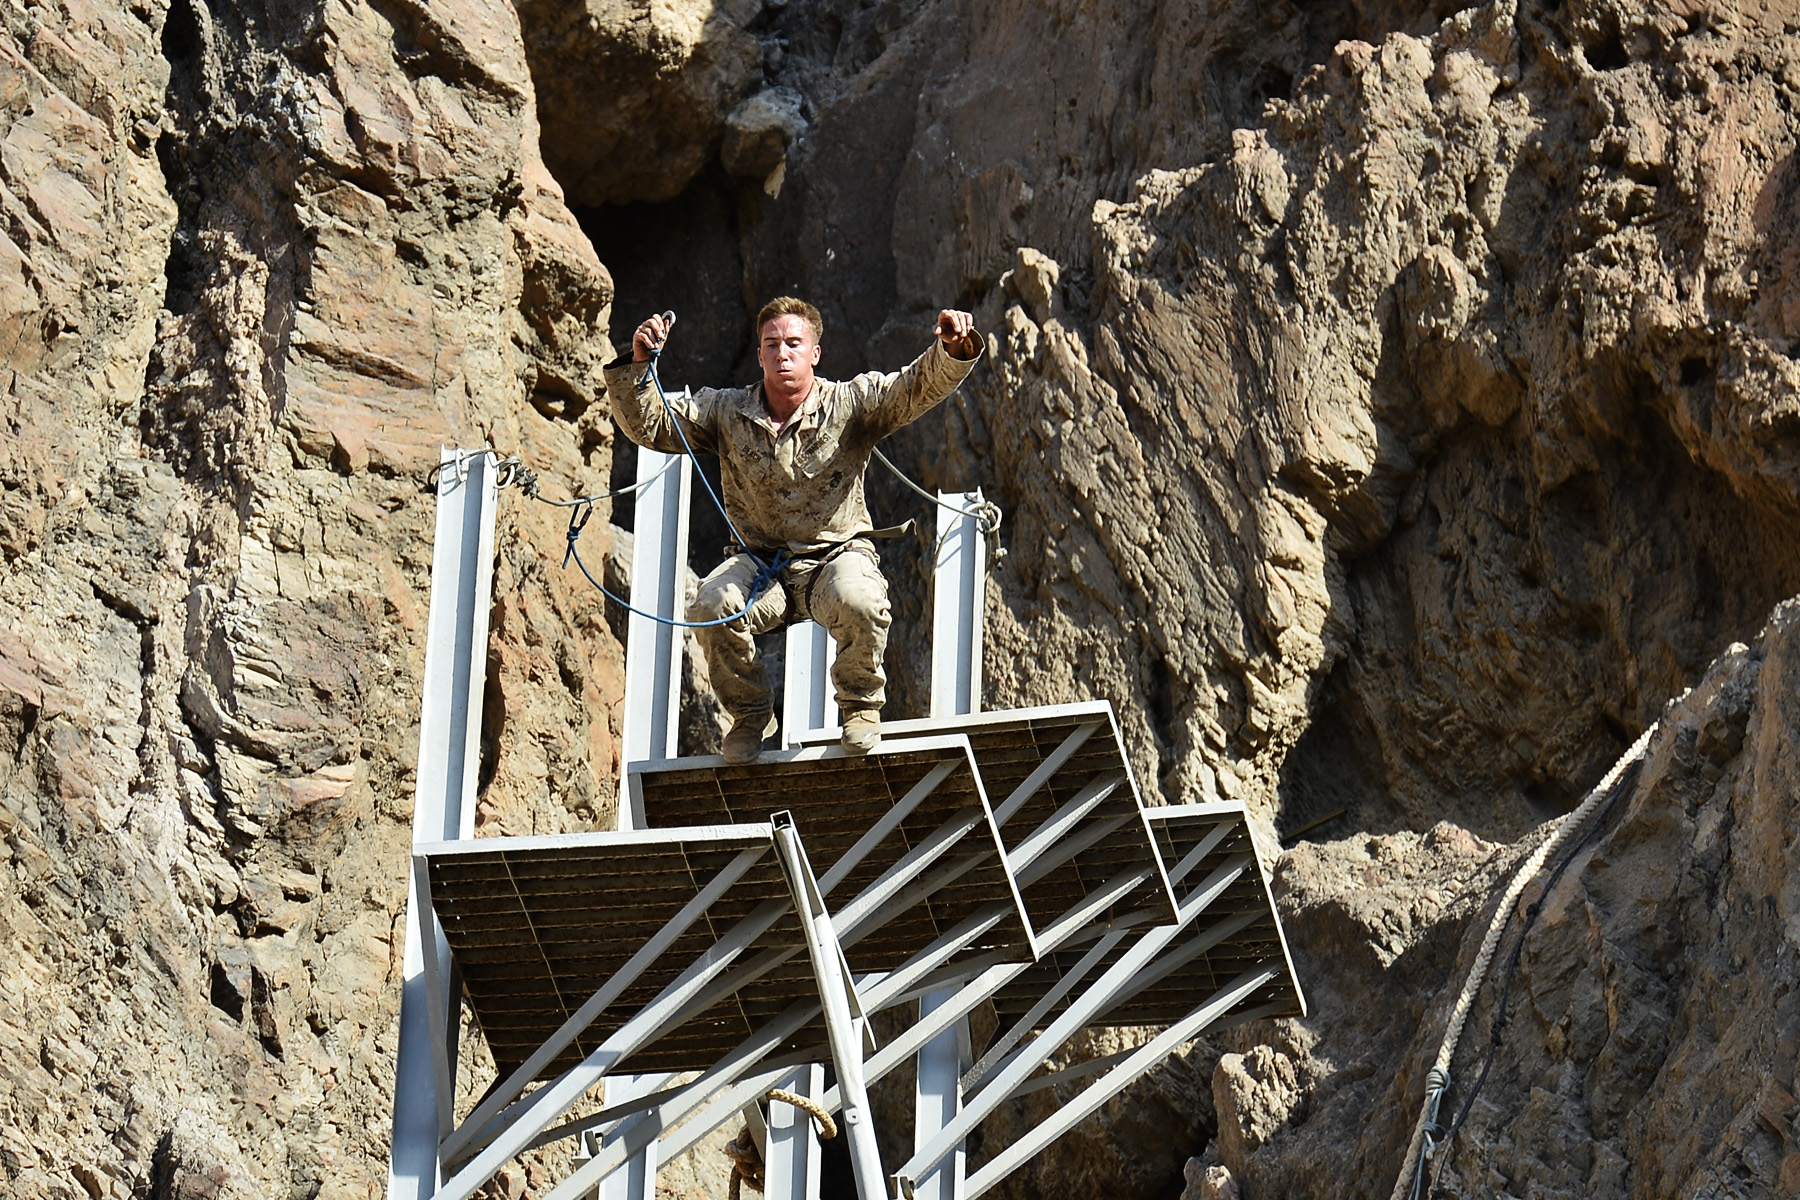 "A U.S. Marine, assigned to the 15th Marine Expeditionary Unit, jumps down platforms for a rope's course during the French Desert Survival Course, near Arta Beach, Djibouti, Sept. 30, 2015. U.S. Army Civil Affairs Battalion soldiers, assigned to Combined Joint Task Force-Horn of Africa, French Army soldiers from the 5th Overseas Combined Arms Regiment, and members of 15th Marine Expeditionary Unit, complete the ""Path of the Unconscious,"" a ropes course carved out of an approximately 300 foot high cliff. (U.S. Air Force photo by Senior Airman Nesha Humes)"